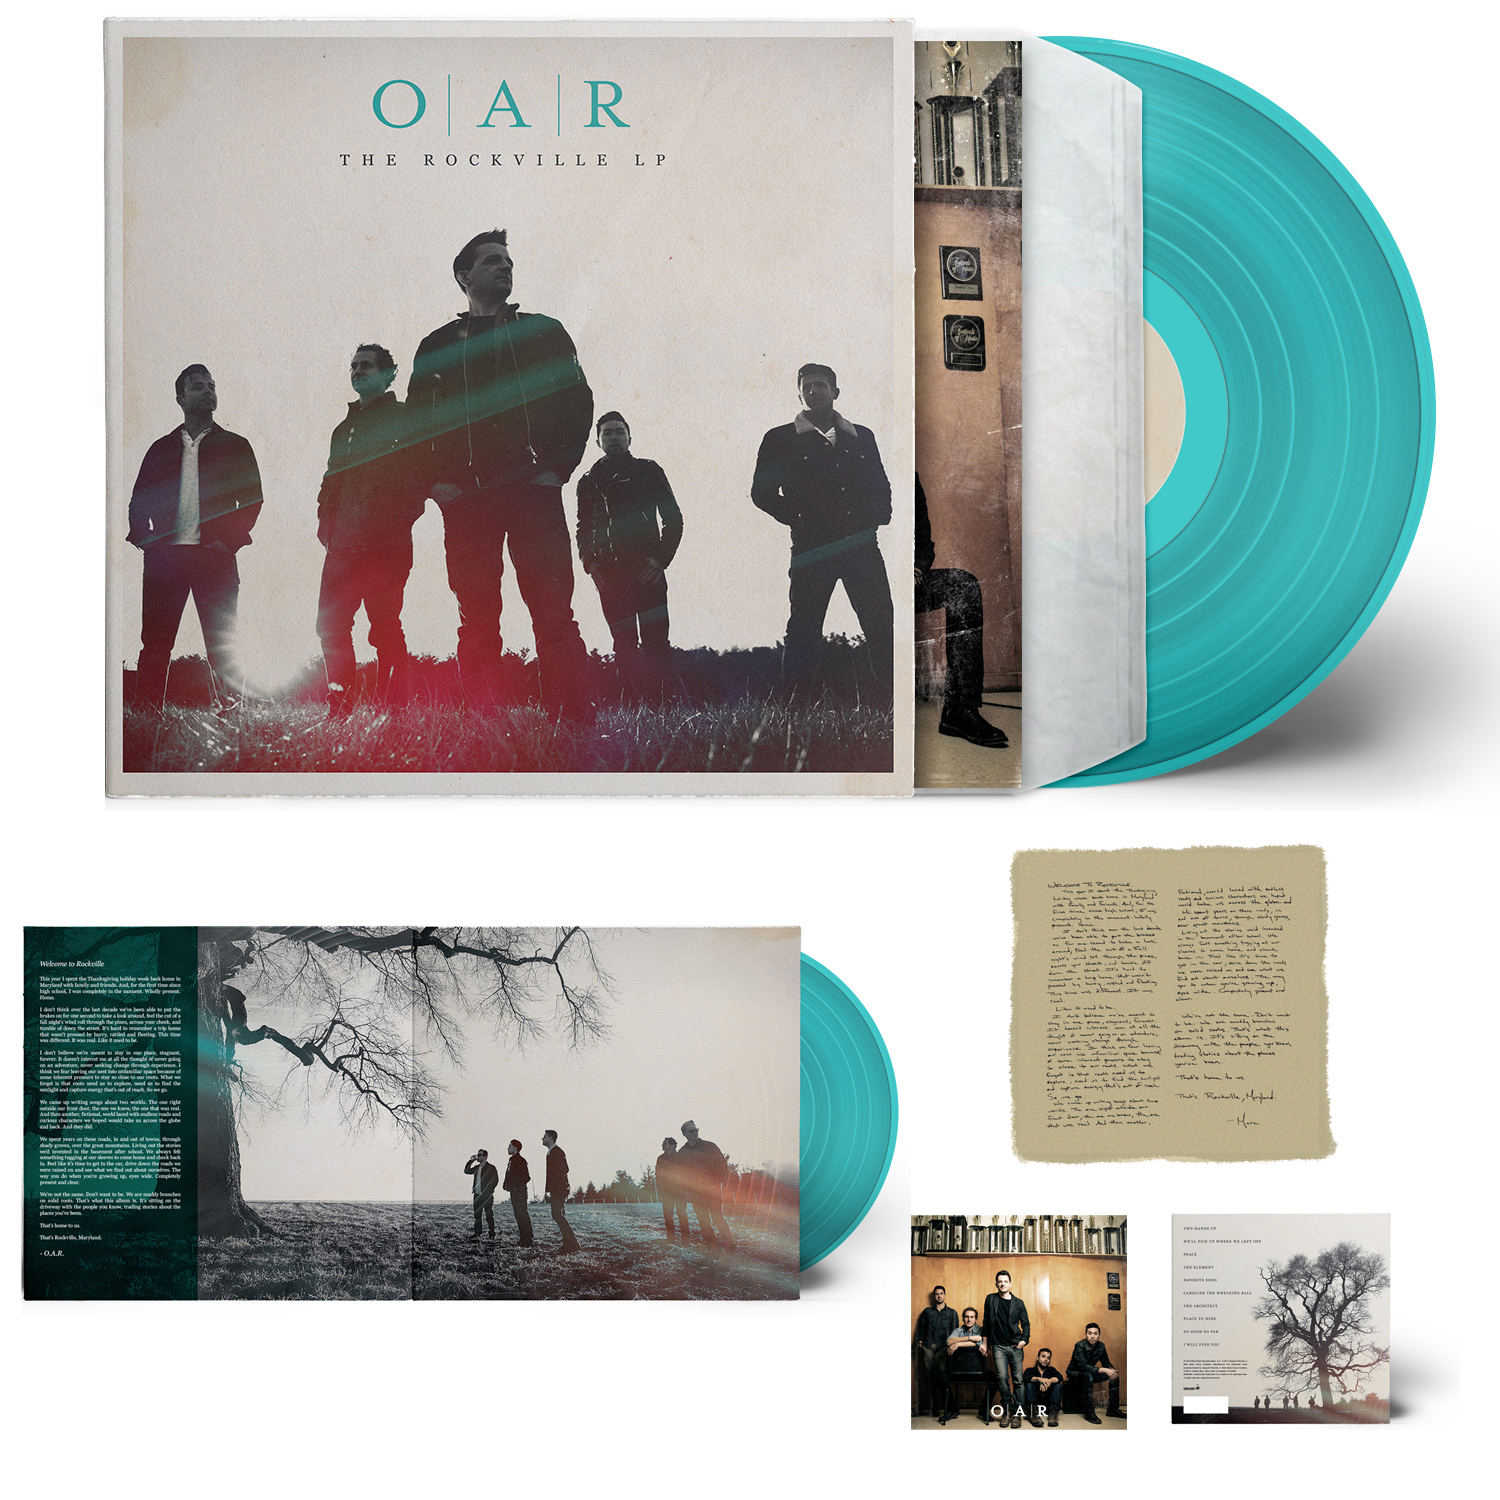 O.A.R. The Rockville LP - LP